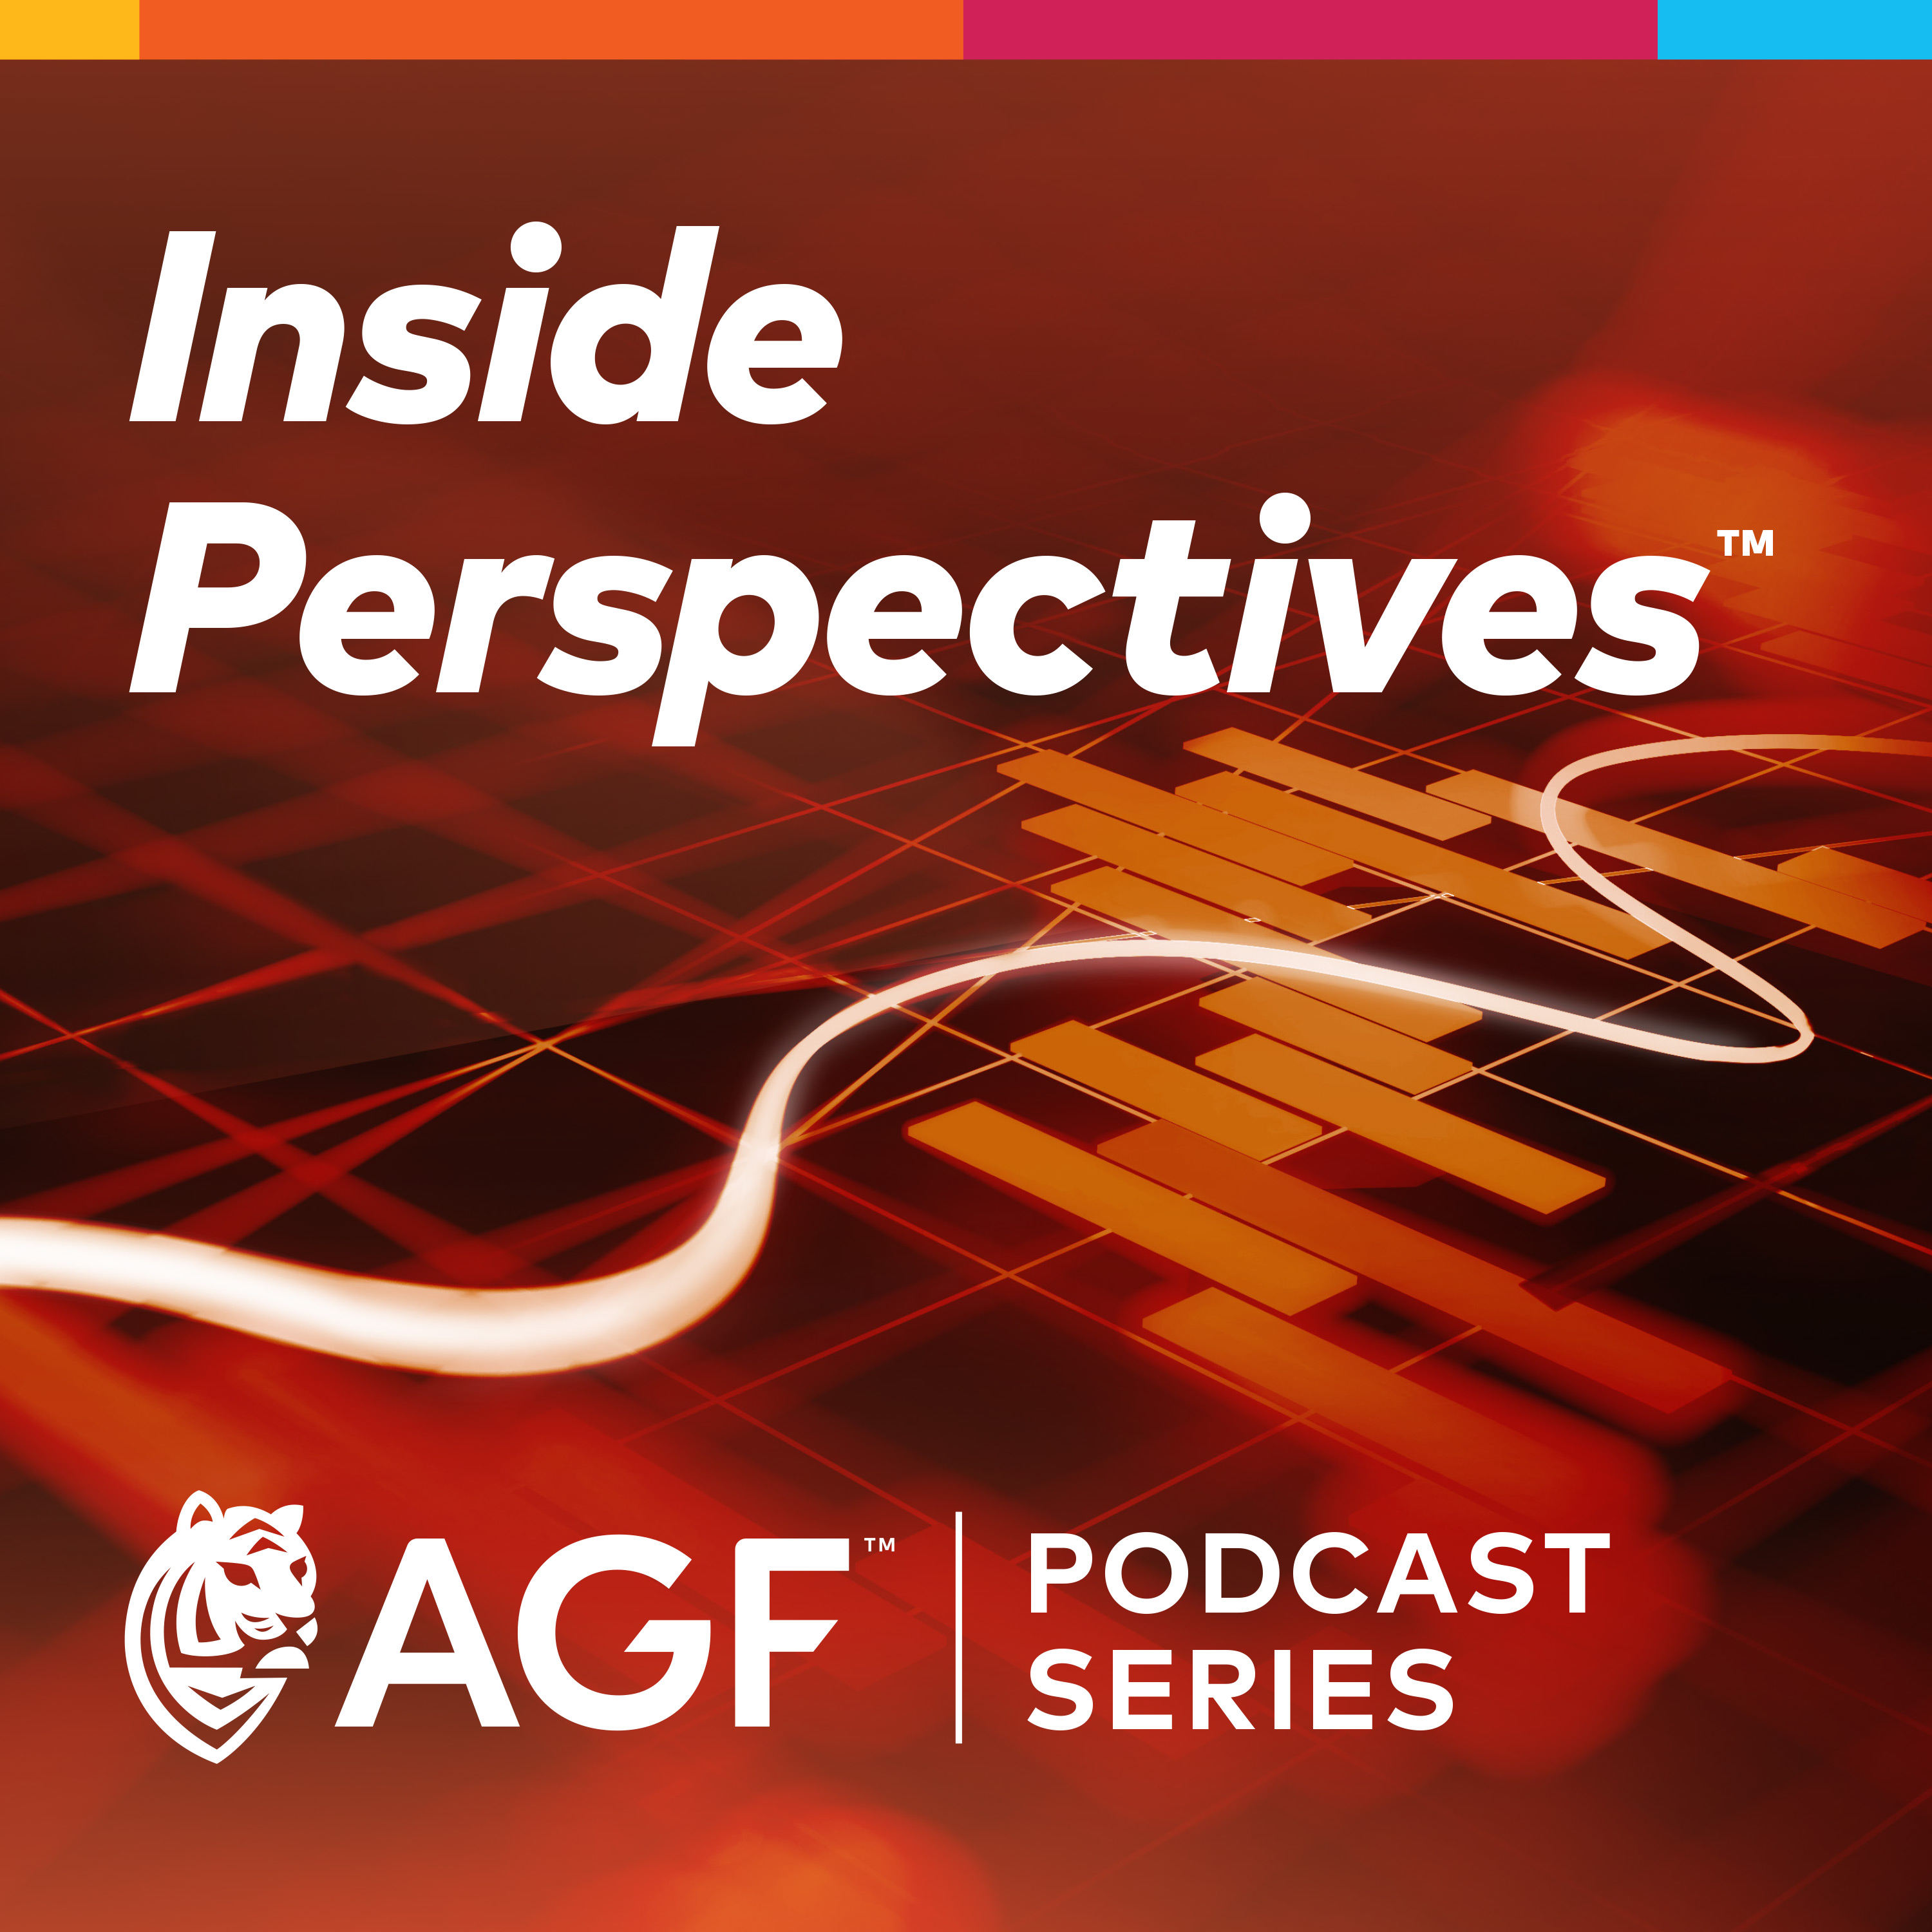 Inside Perspectives: An AGF Podcast Series show art